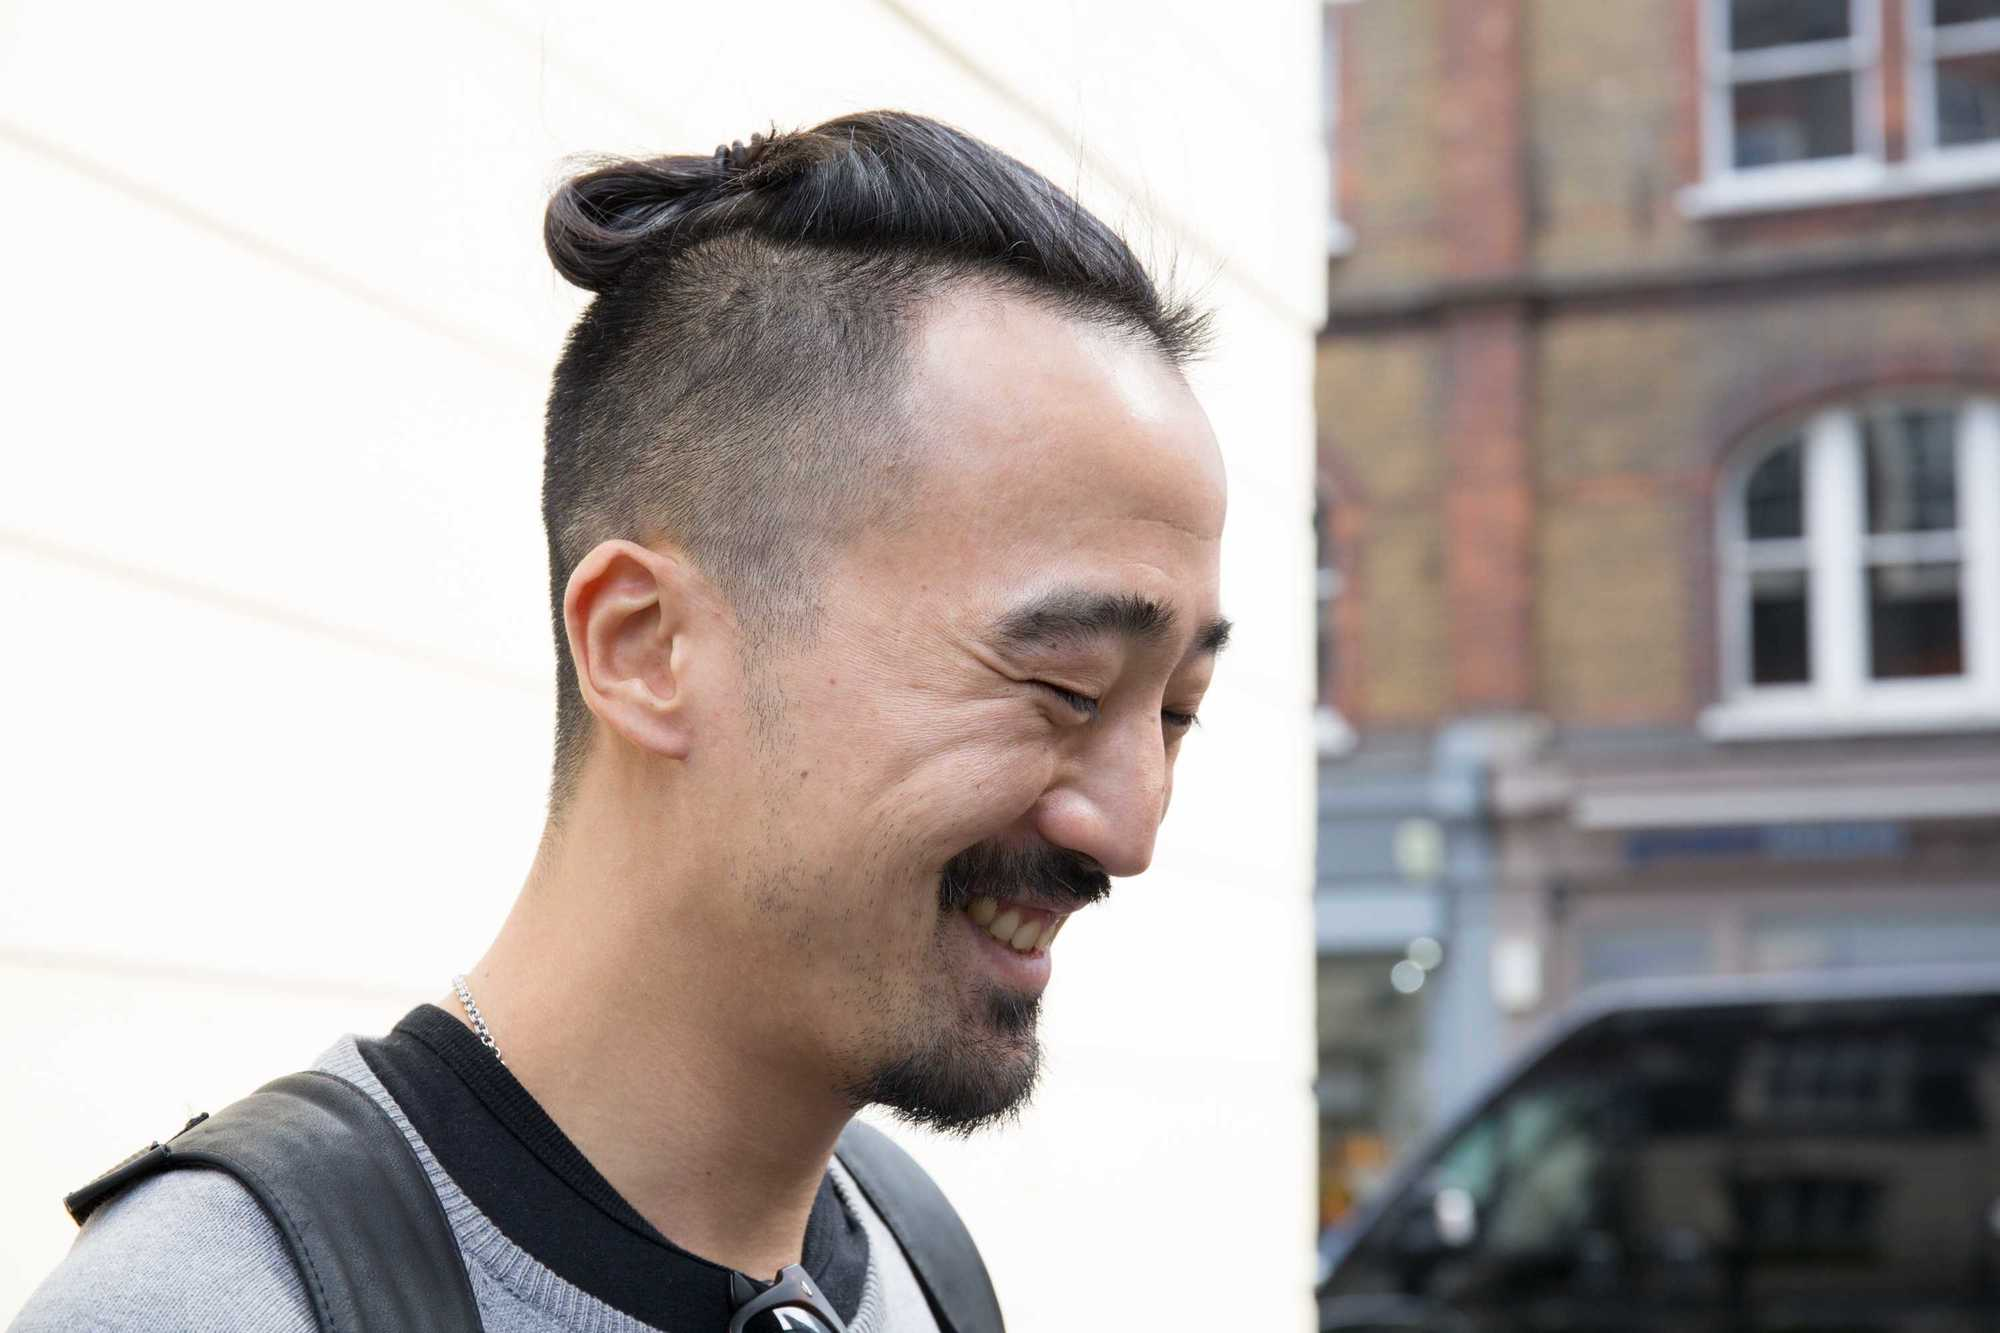 Man bun and beard: Close-up street style shot of a man with a bumped-up clipped man bun with shaved undercut and a goatee